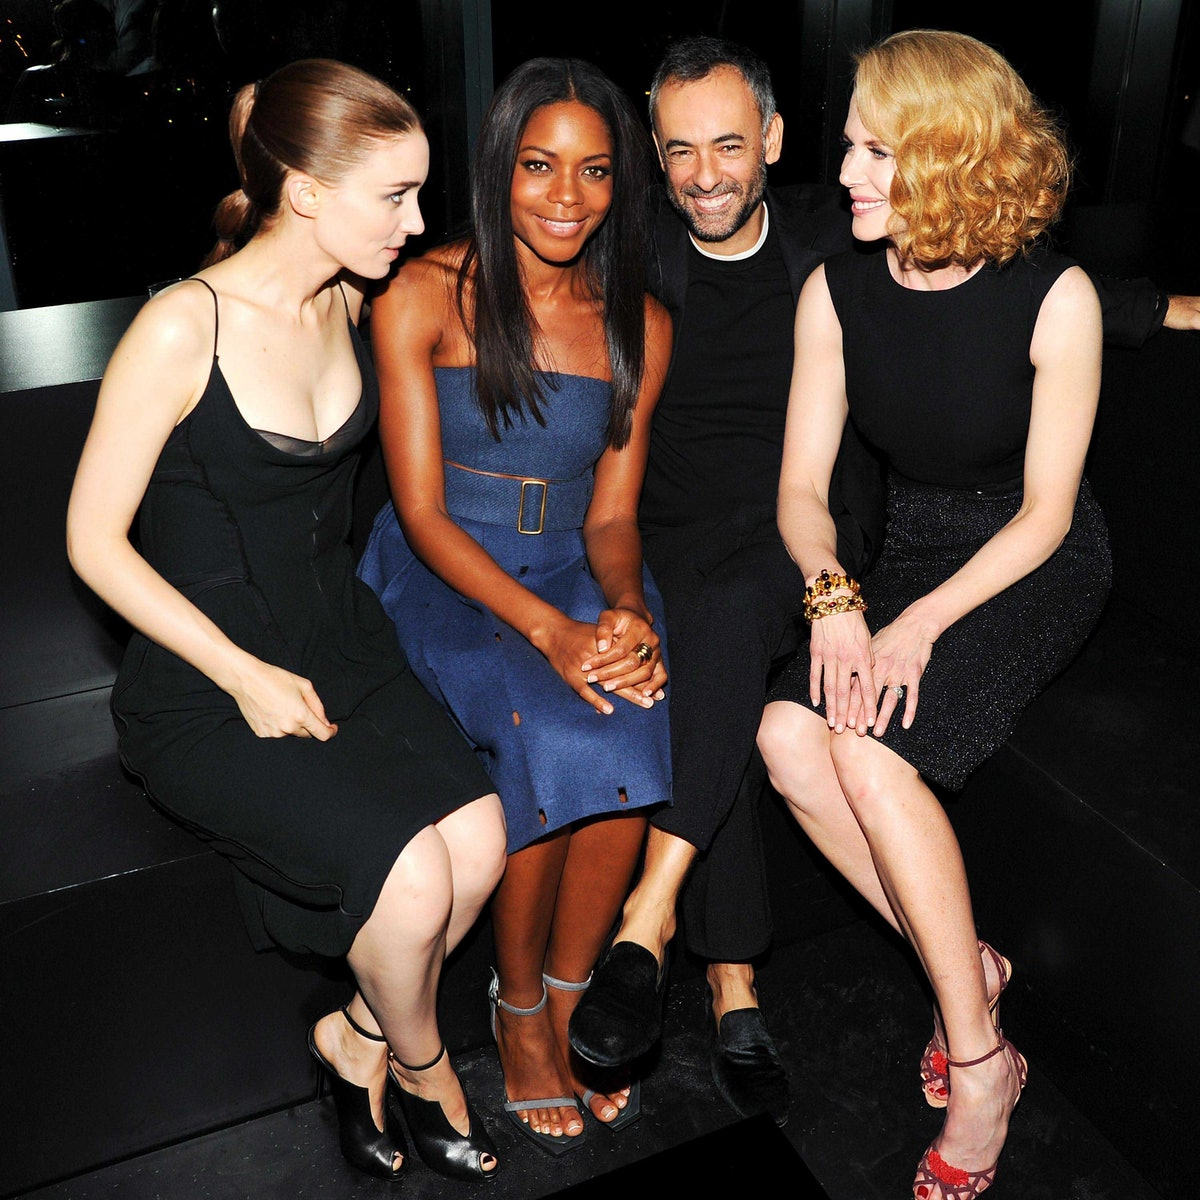 calvin-klein-collection-w-s14-after-party-rm+nh+fc+nk-02-091213_ph_billy-farrell-bfa-nyc-com